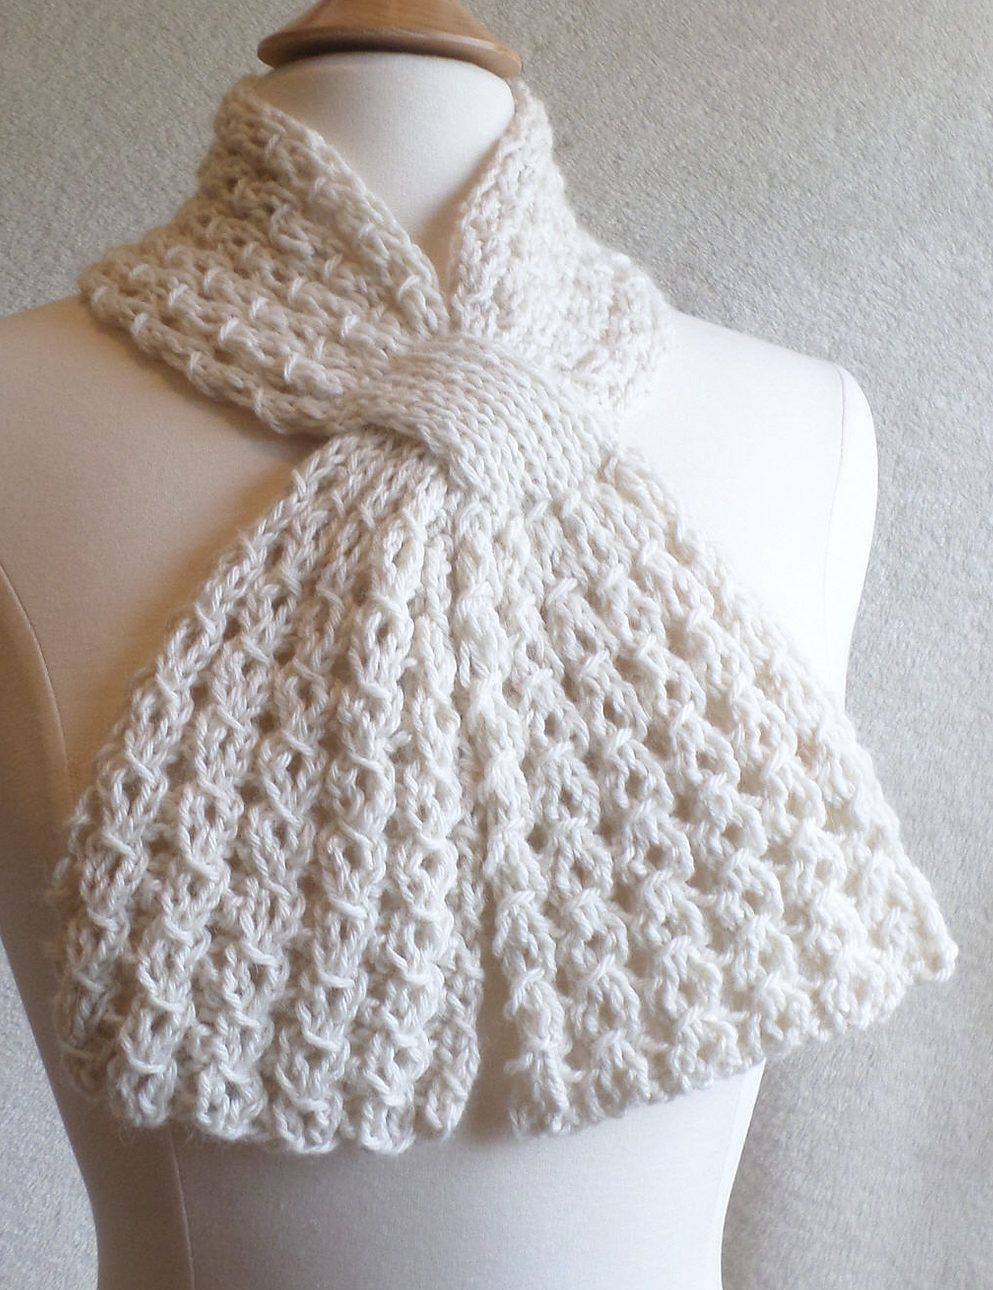 Free Knitting Pattern for 4 Row Repeat Loopy Lace Scarf - This ...